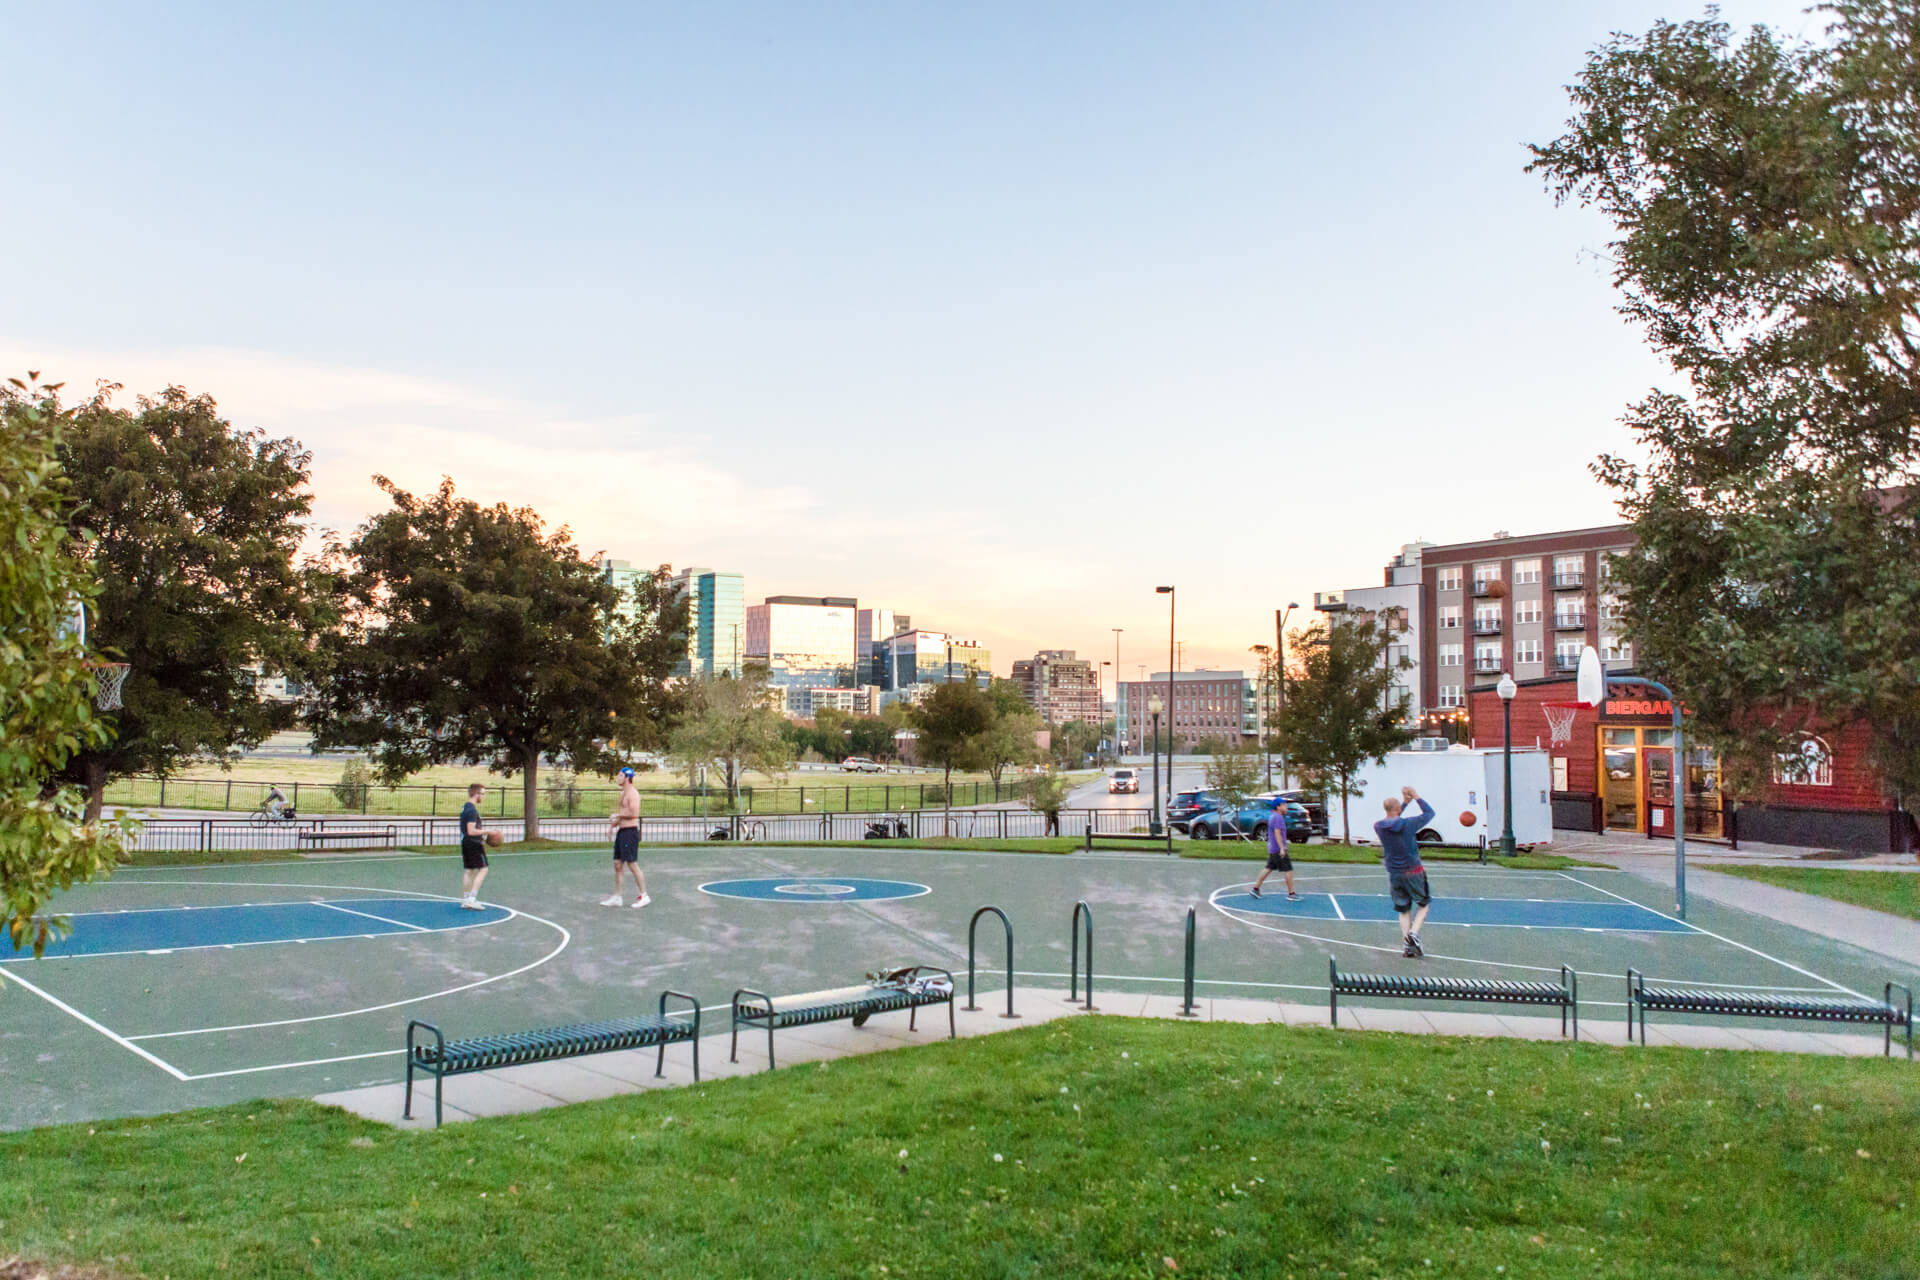 Full Outdoor Basketball Court near Centric LoHi by Windsor, Denver, CO, 80211